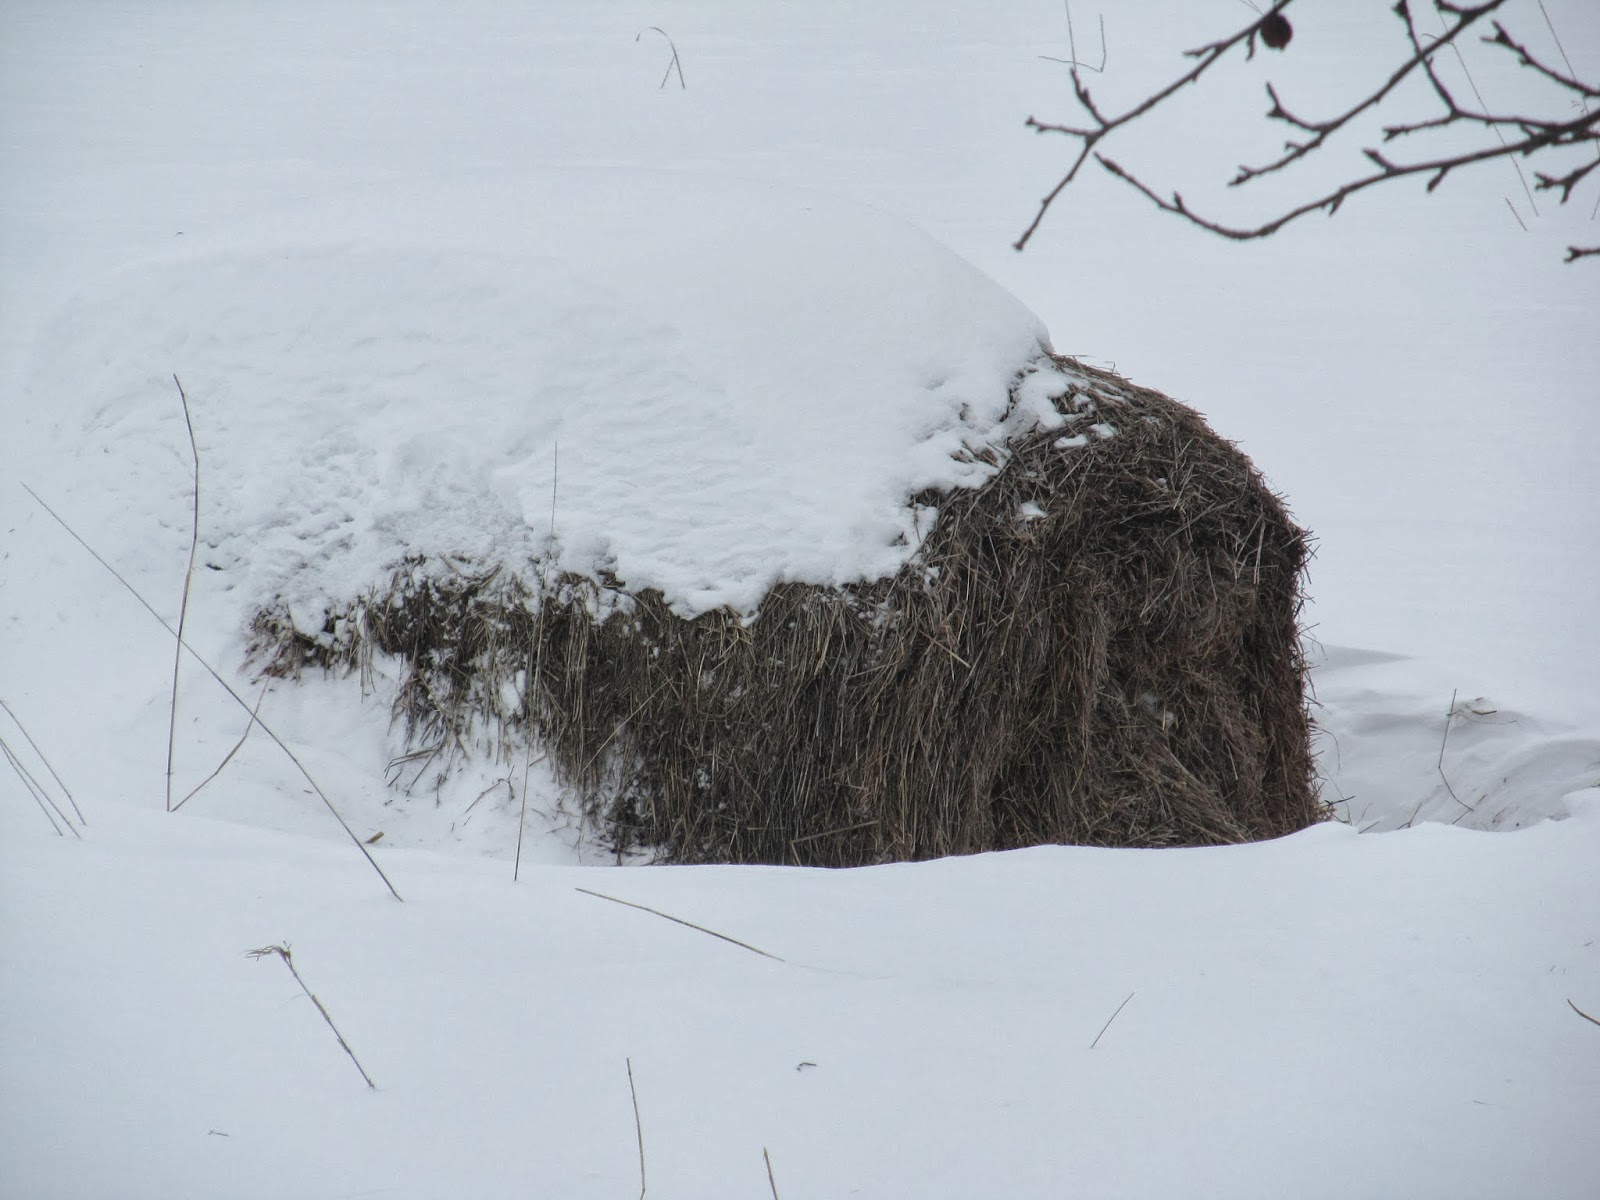 hay bale in winter